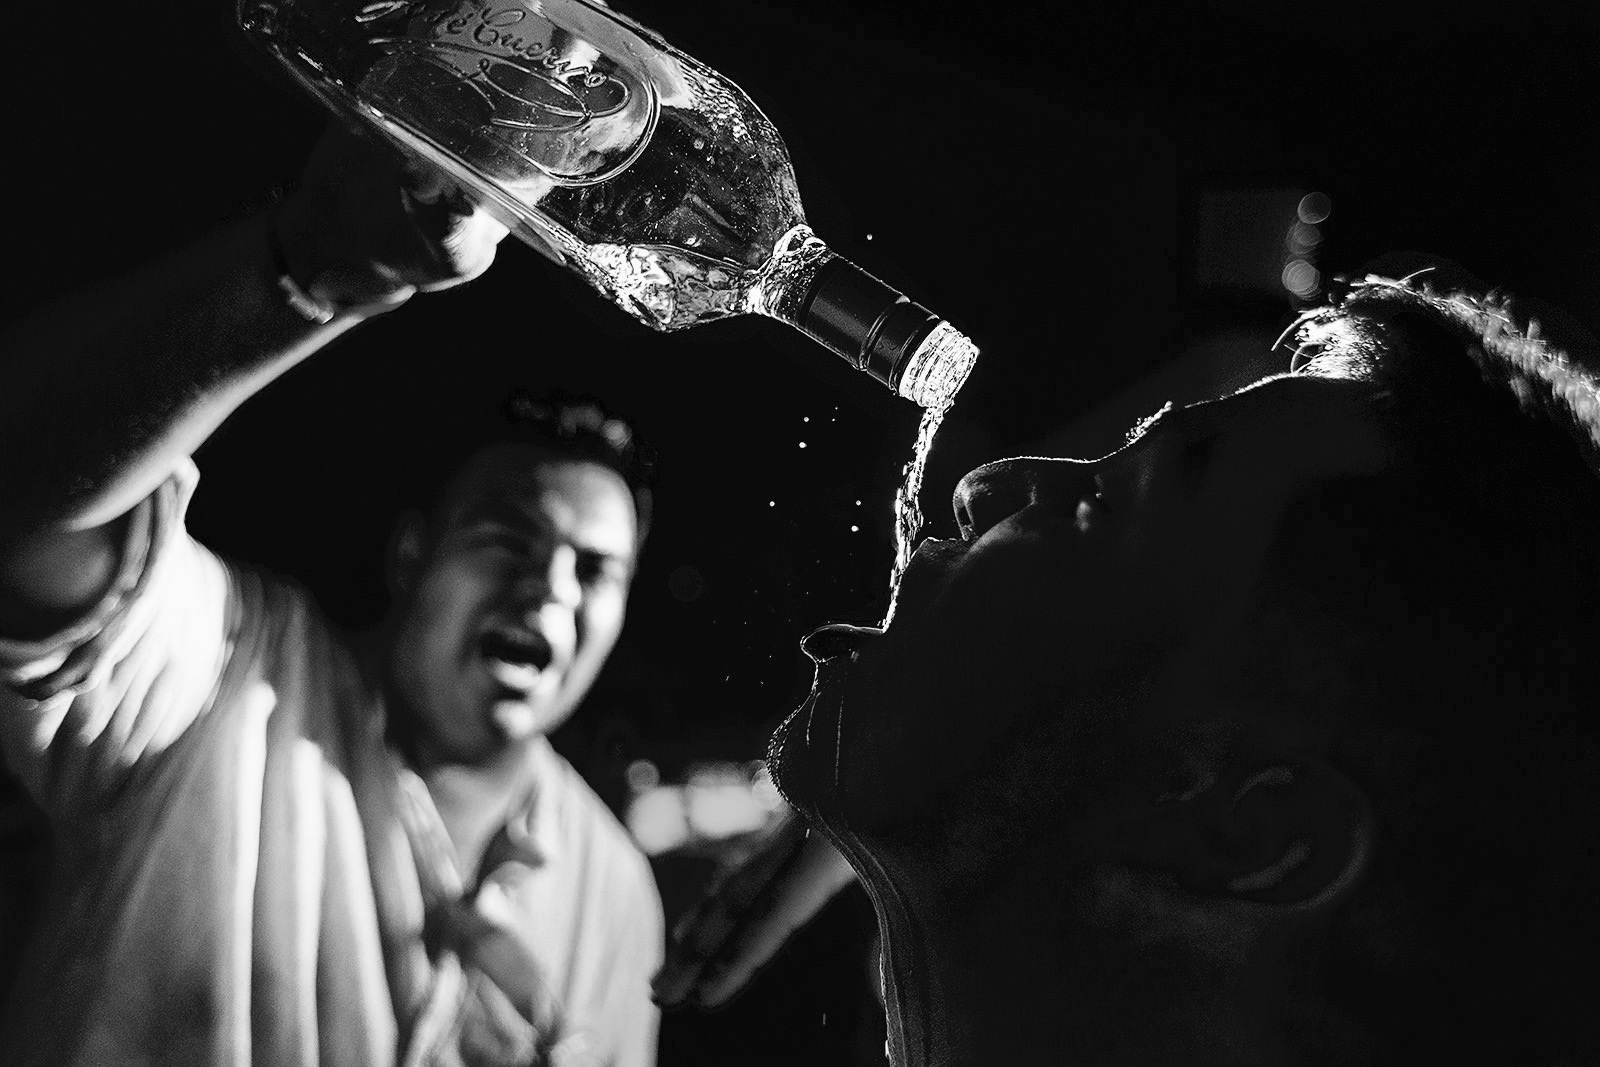 Groom pouring tequila straight from the bottle into a guest's mouth